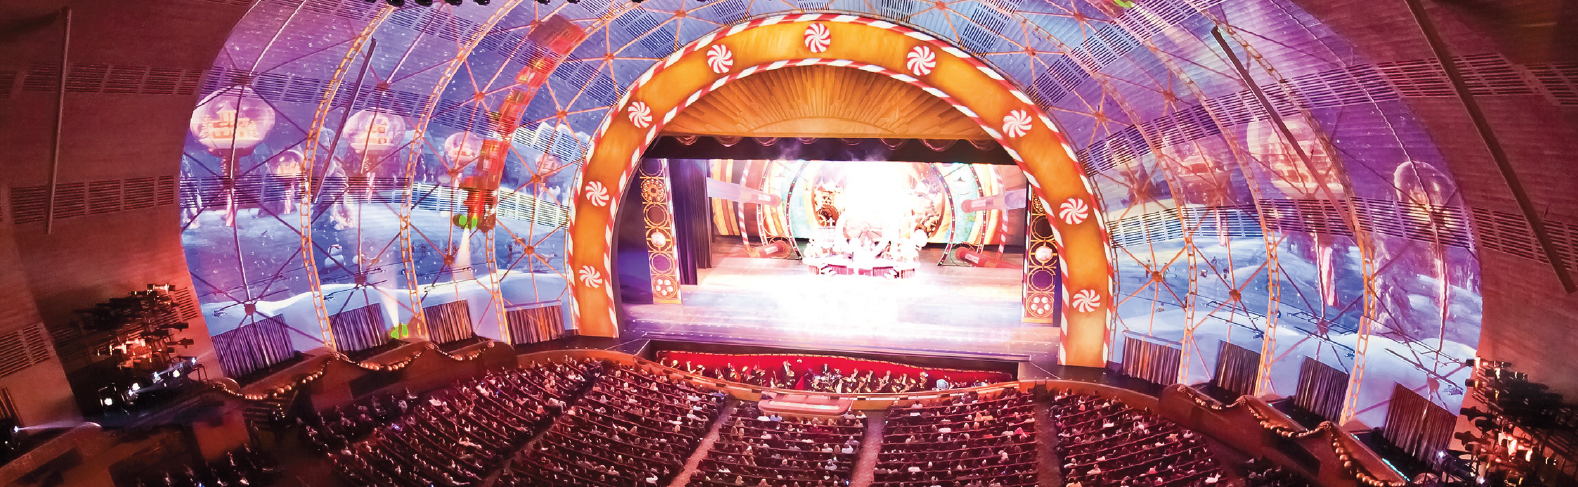 Radio City Music Hall - Digital Projection : Digital Projection